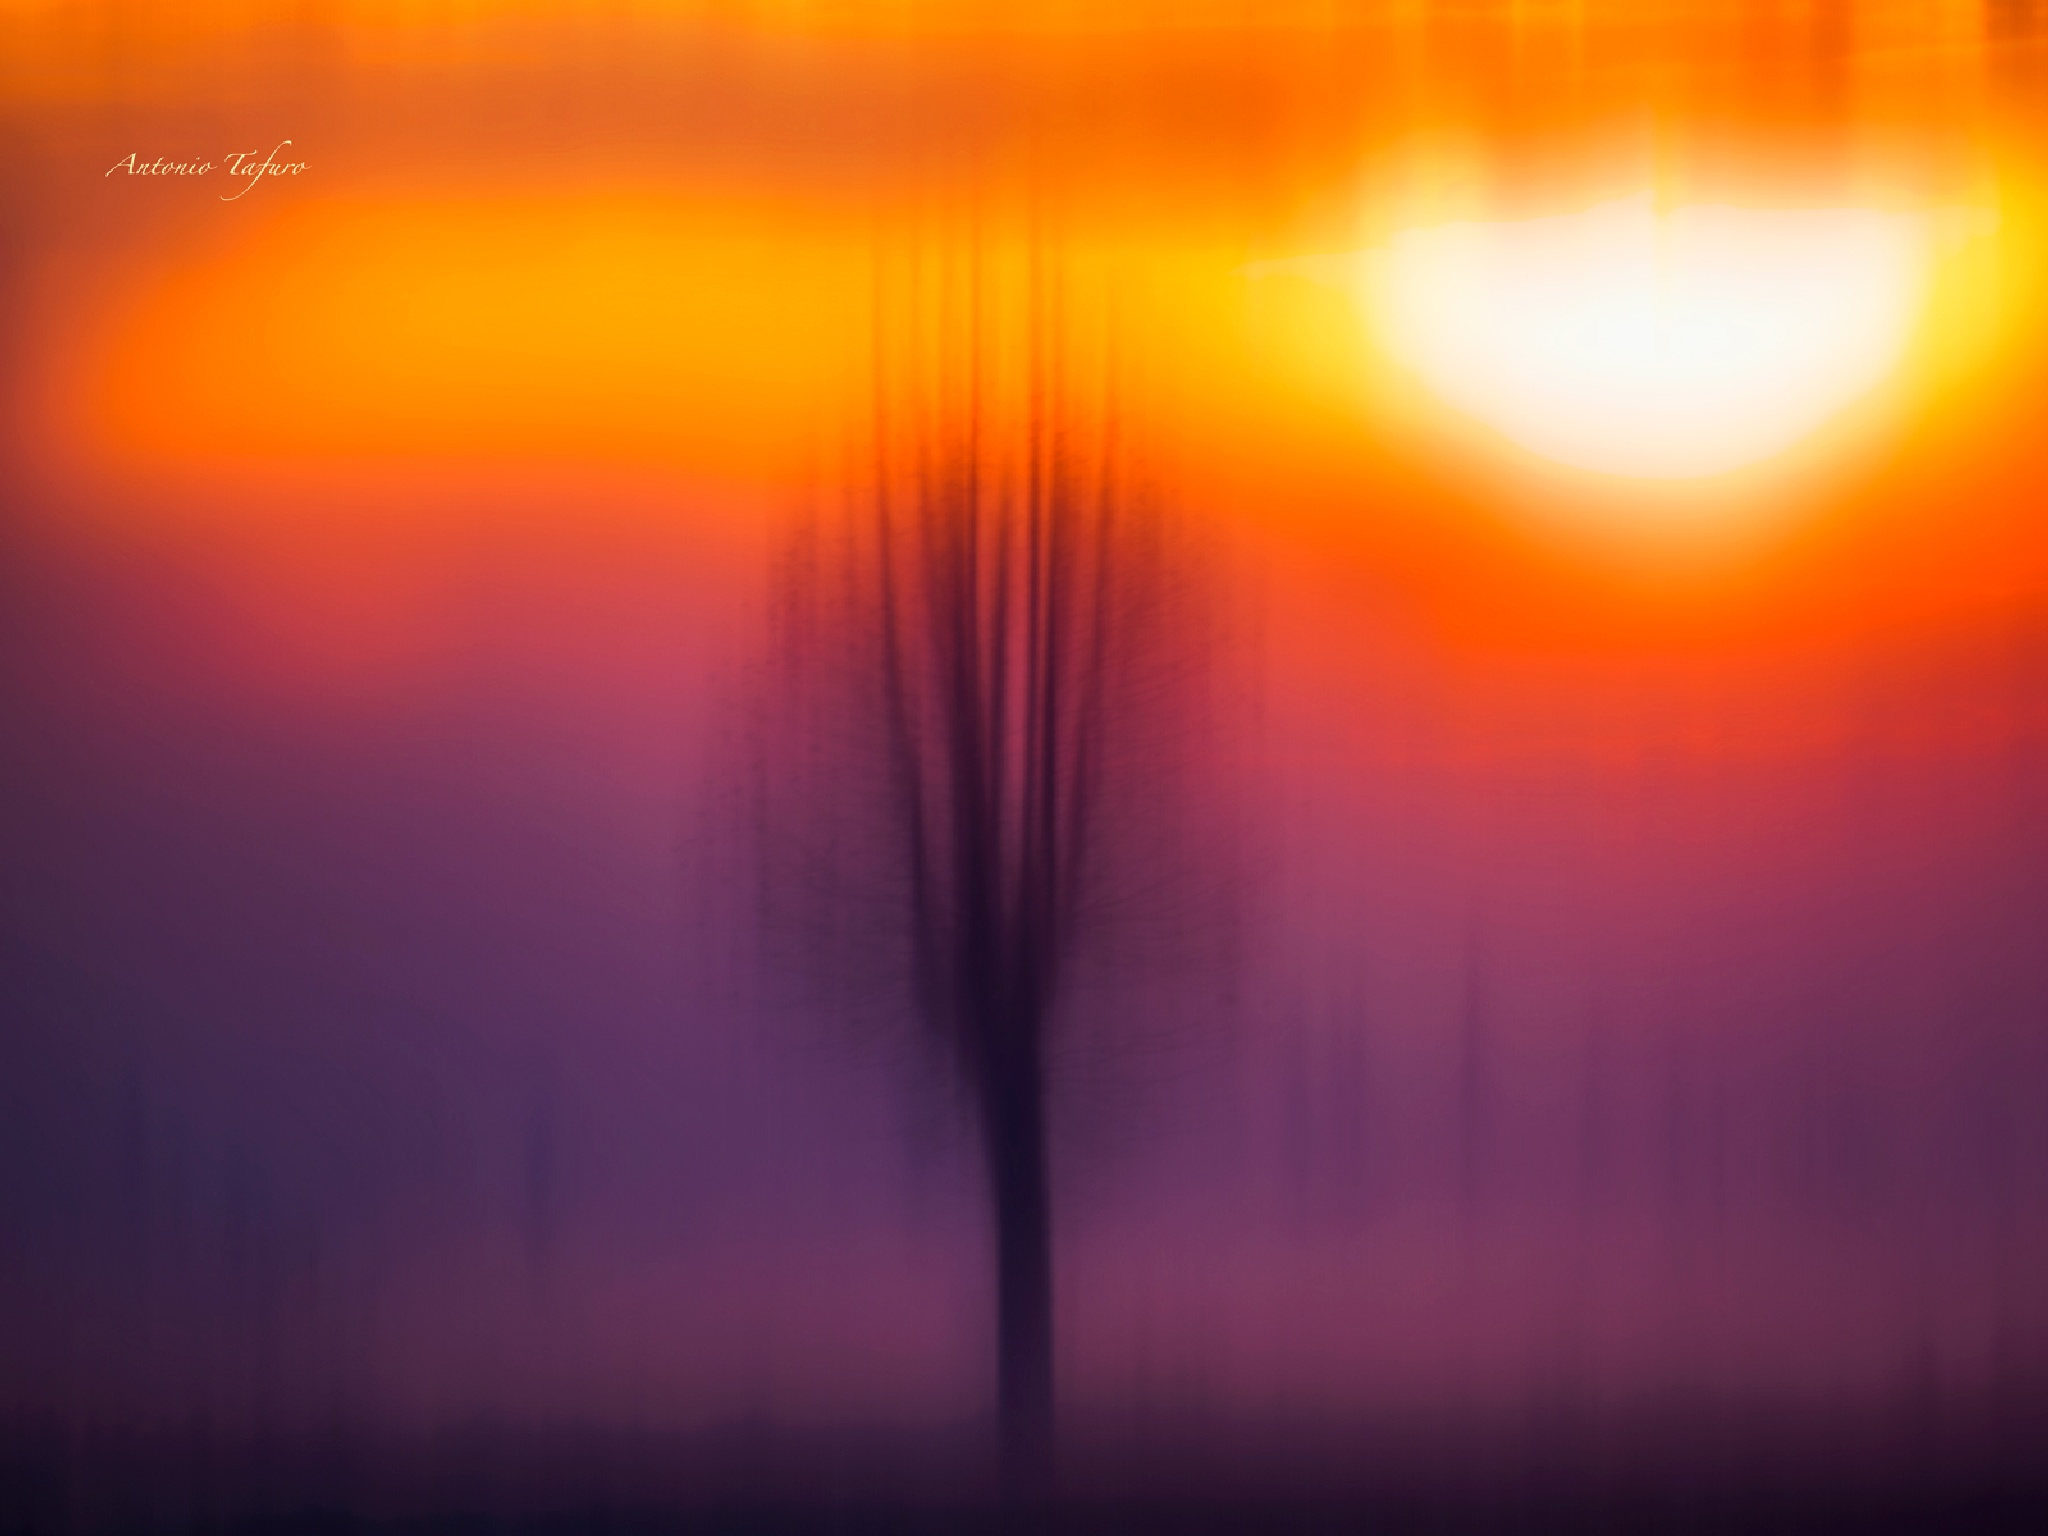 brushstrokes of nature by Antonio Tafuro